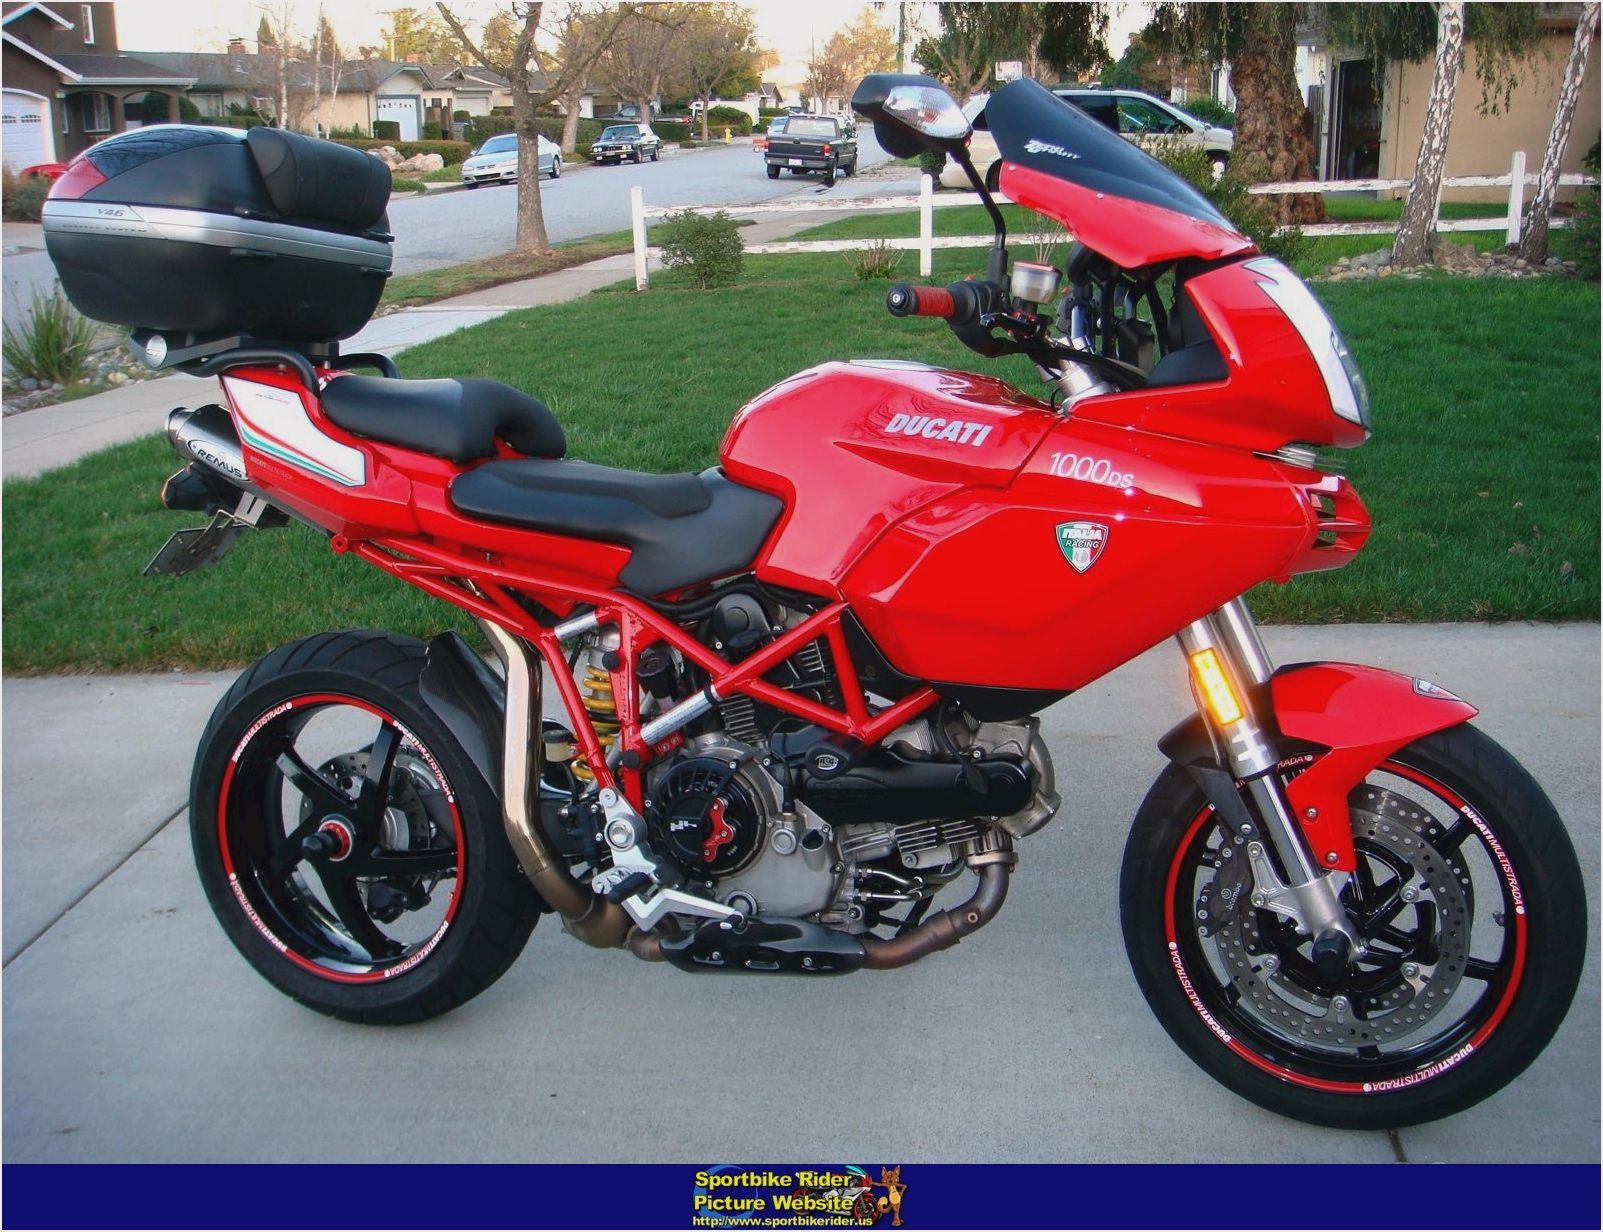 Ducati Multistrada 1000 DS 2006 images #79209